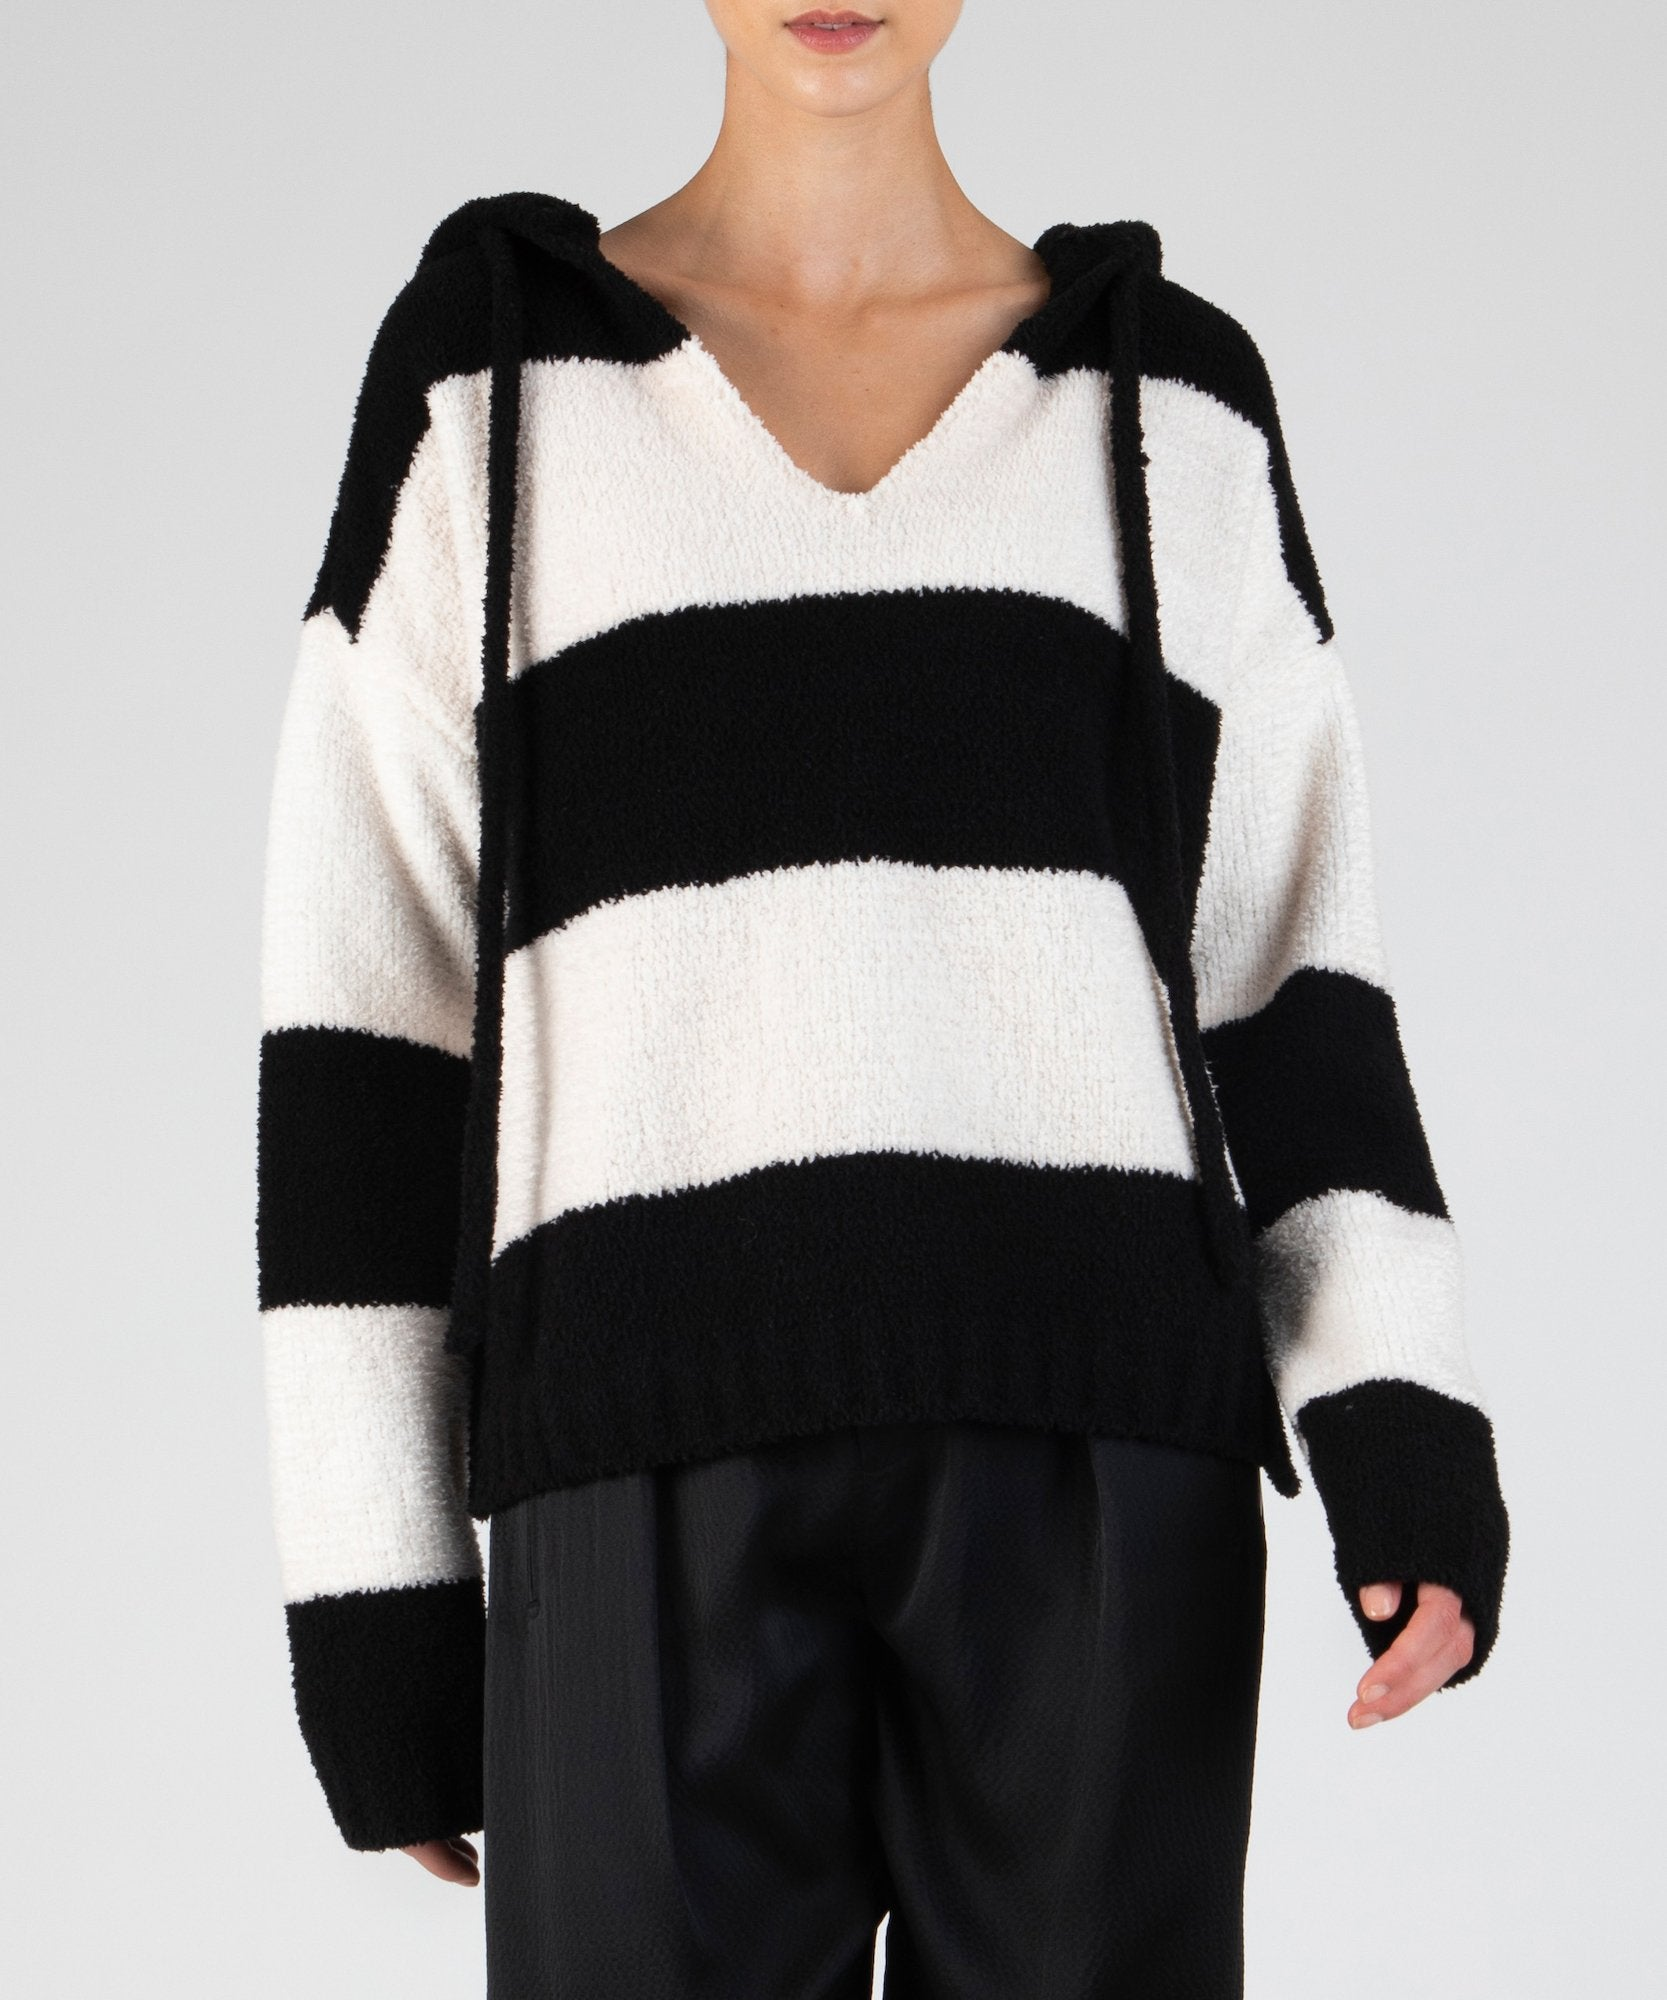 Black and White Bold Stripe Chenille Hooded Sweater - Women's Luxe Sweater by ATM Anthony Thomas Melillo